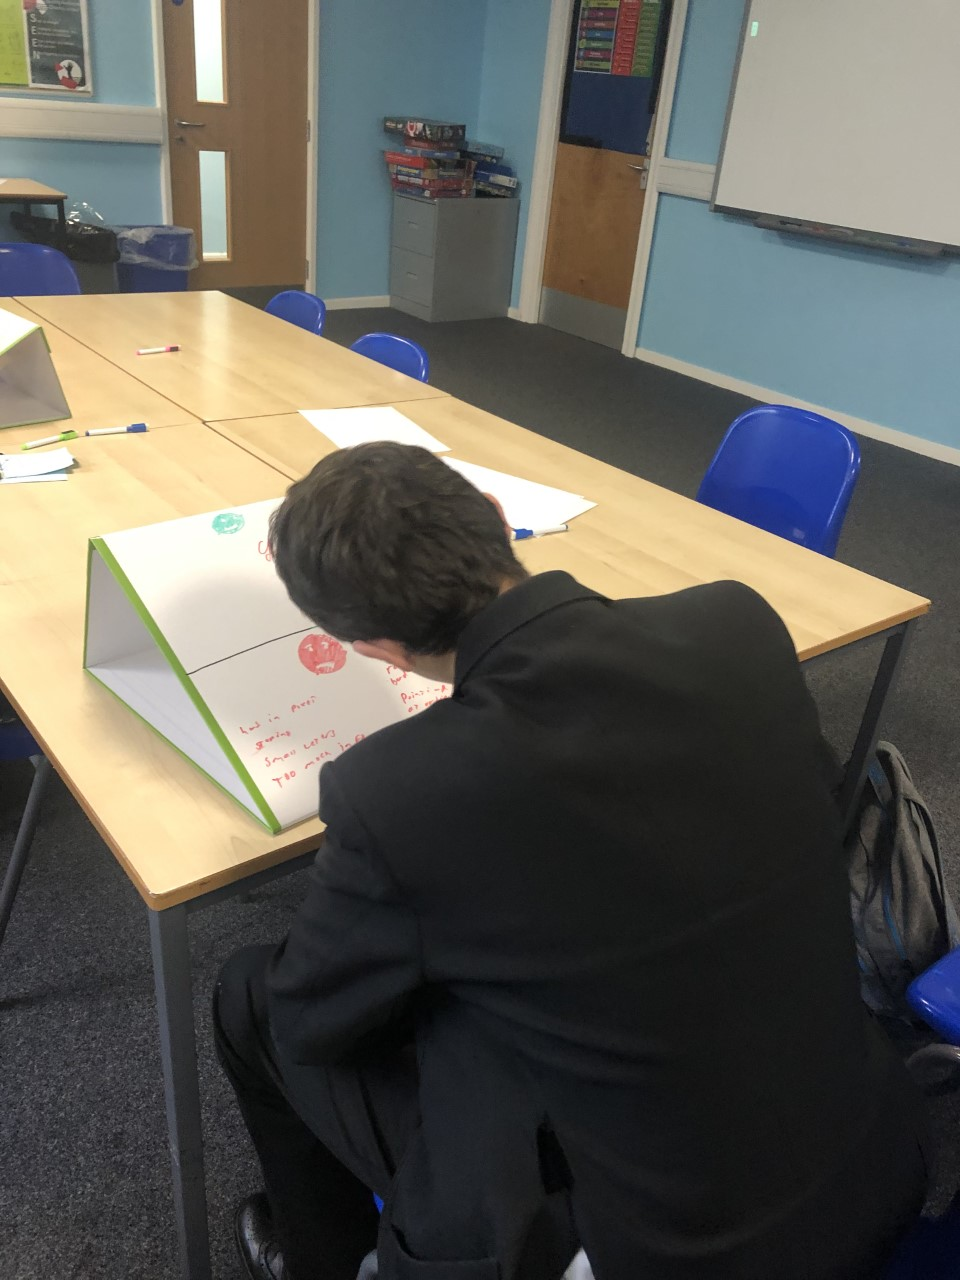 Special Educational Needs Department uses school tabletop whiteboards as a writing slope in lessons